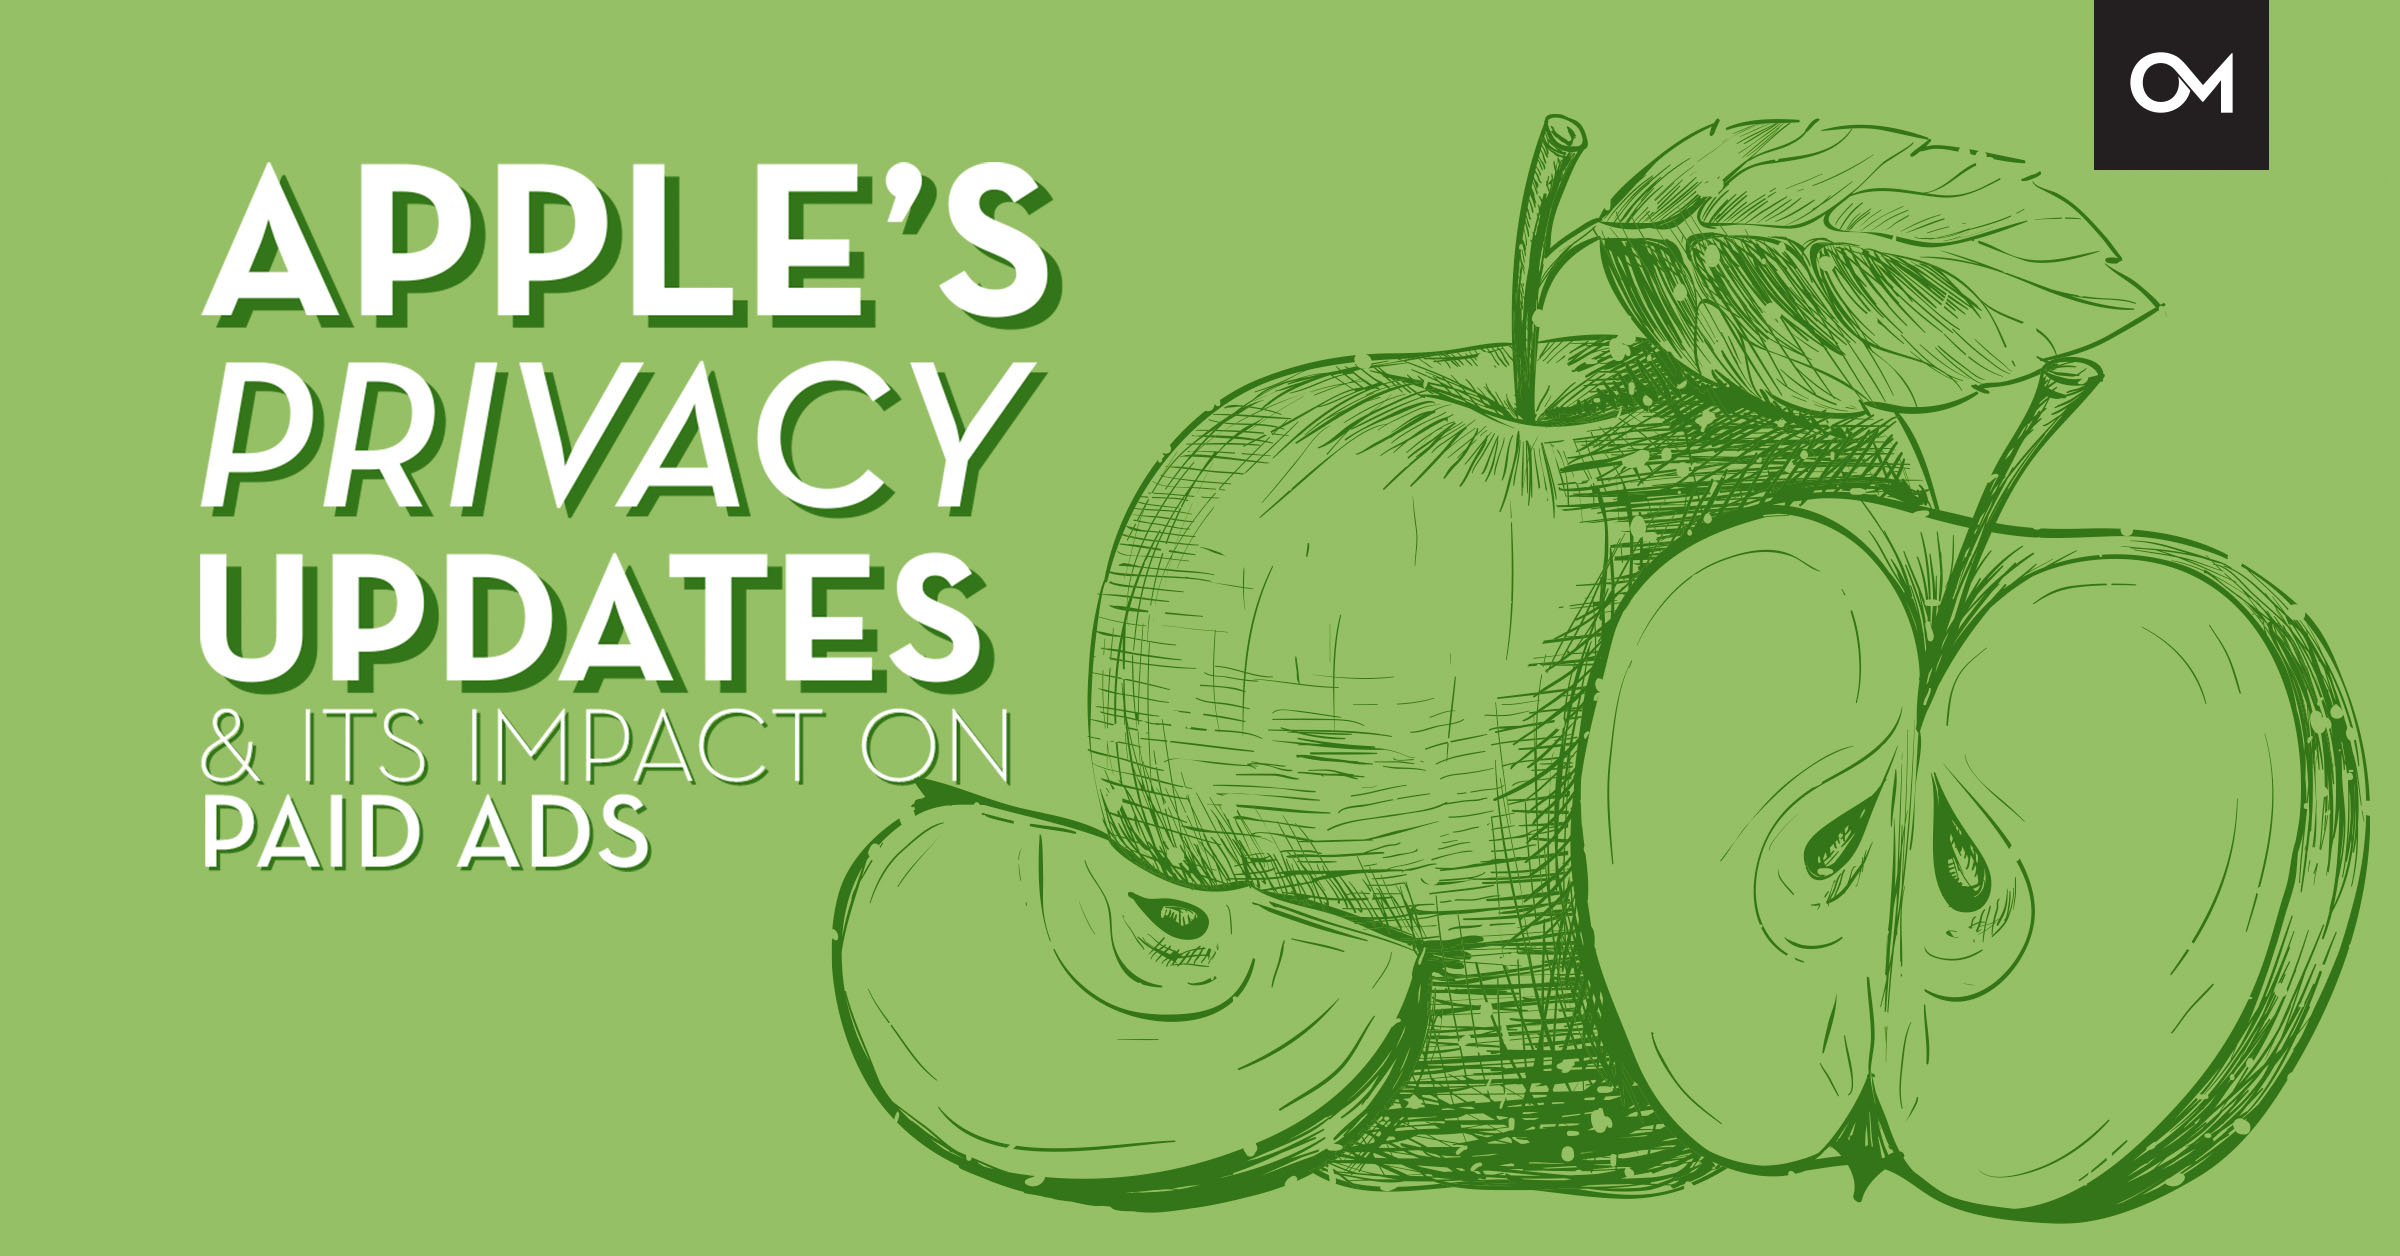 Apple's Privacy Updates and Its Impact on Paid Ads